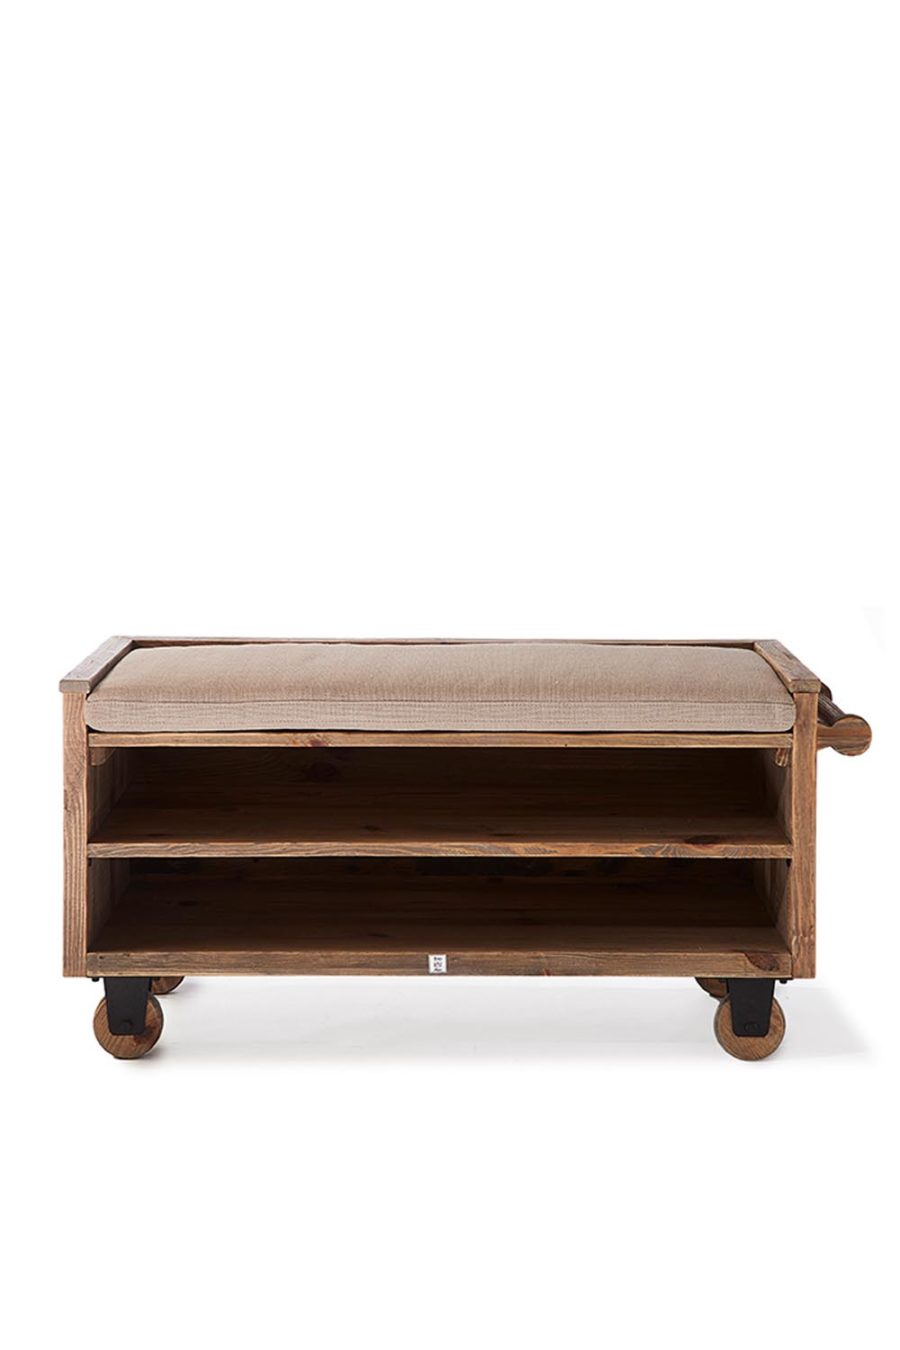 The Shoe Factory Bench incl. Cush